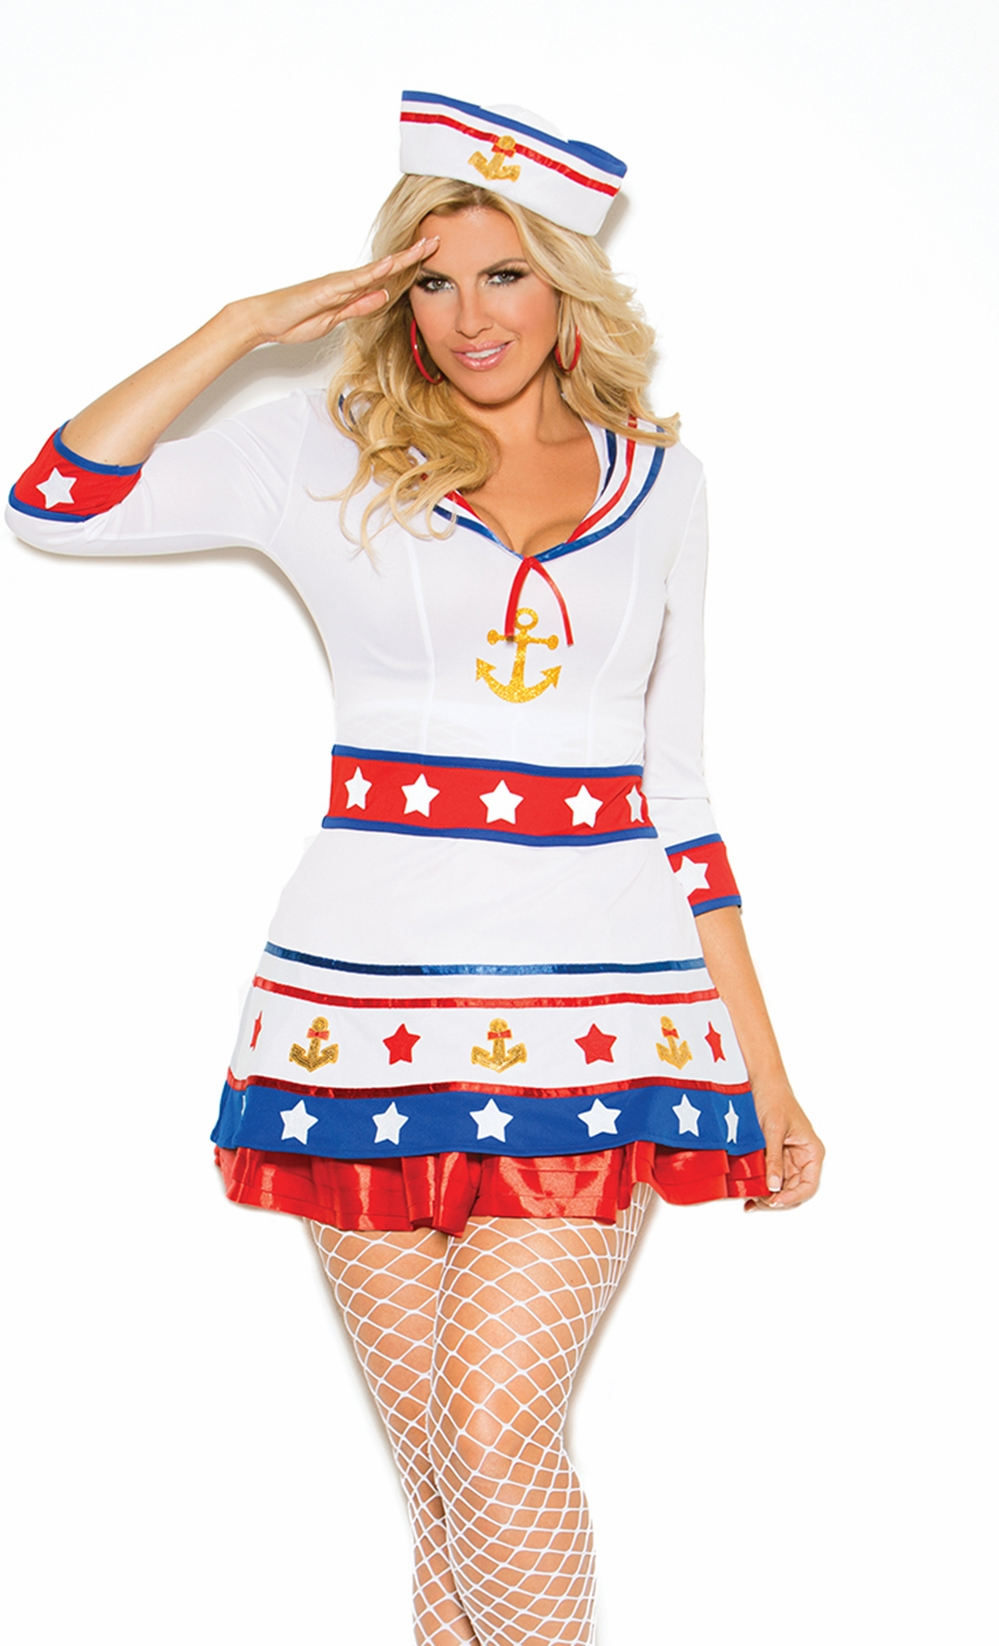 99002x Plus Size Sexy Sailor Adult Costume by Elegant Moments